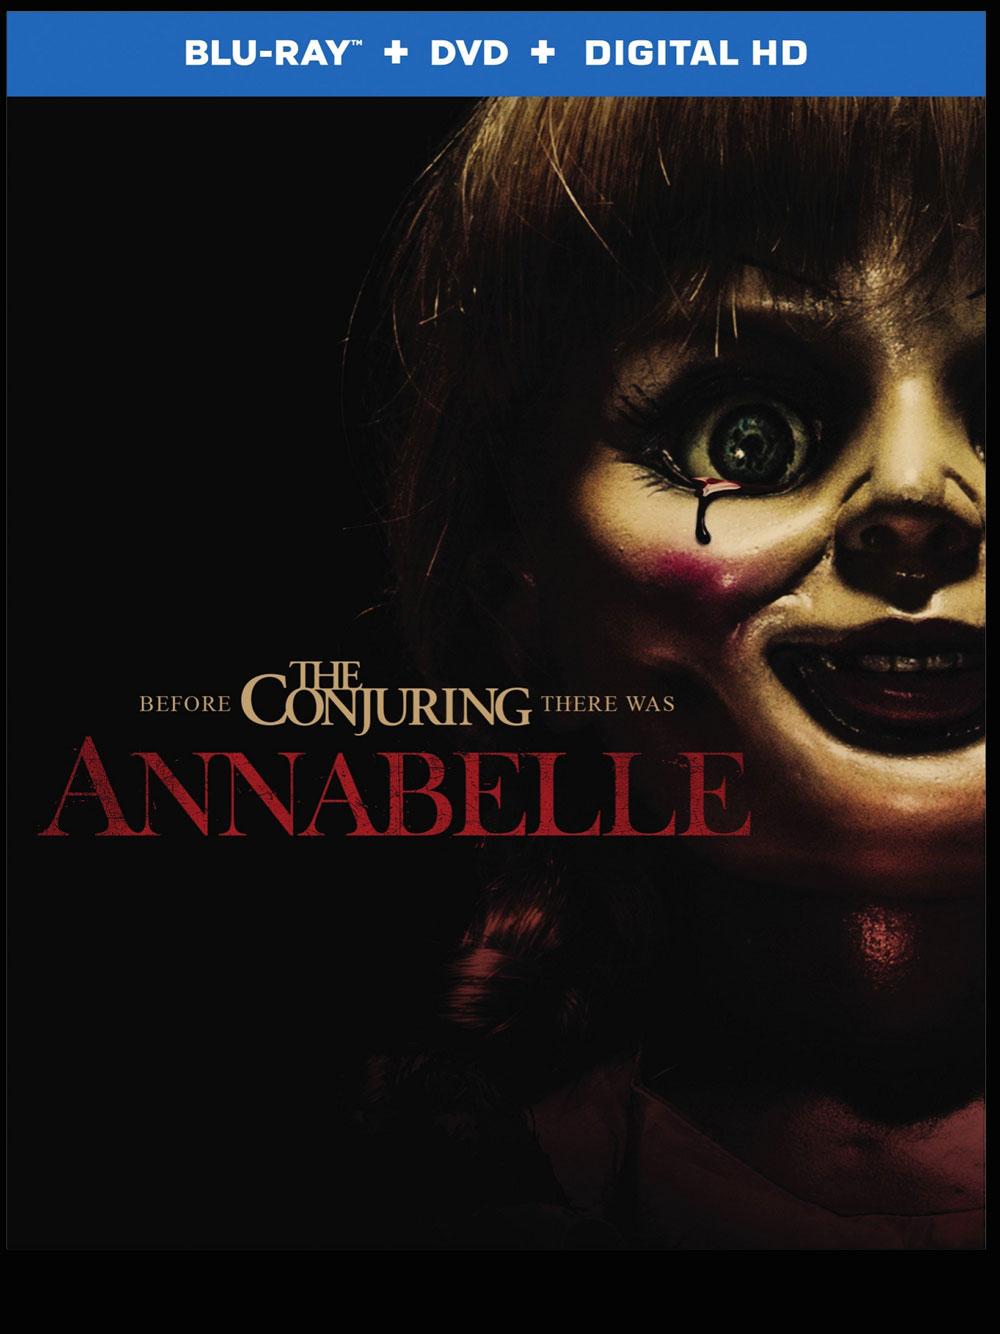 annabelle - Exclusive: Annabelle - A Demonic Unveiling!